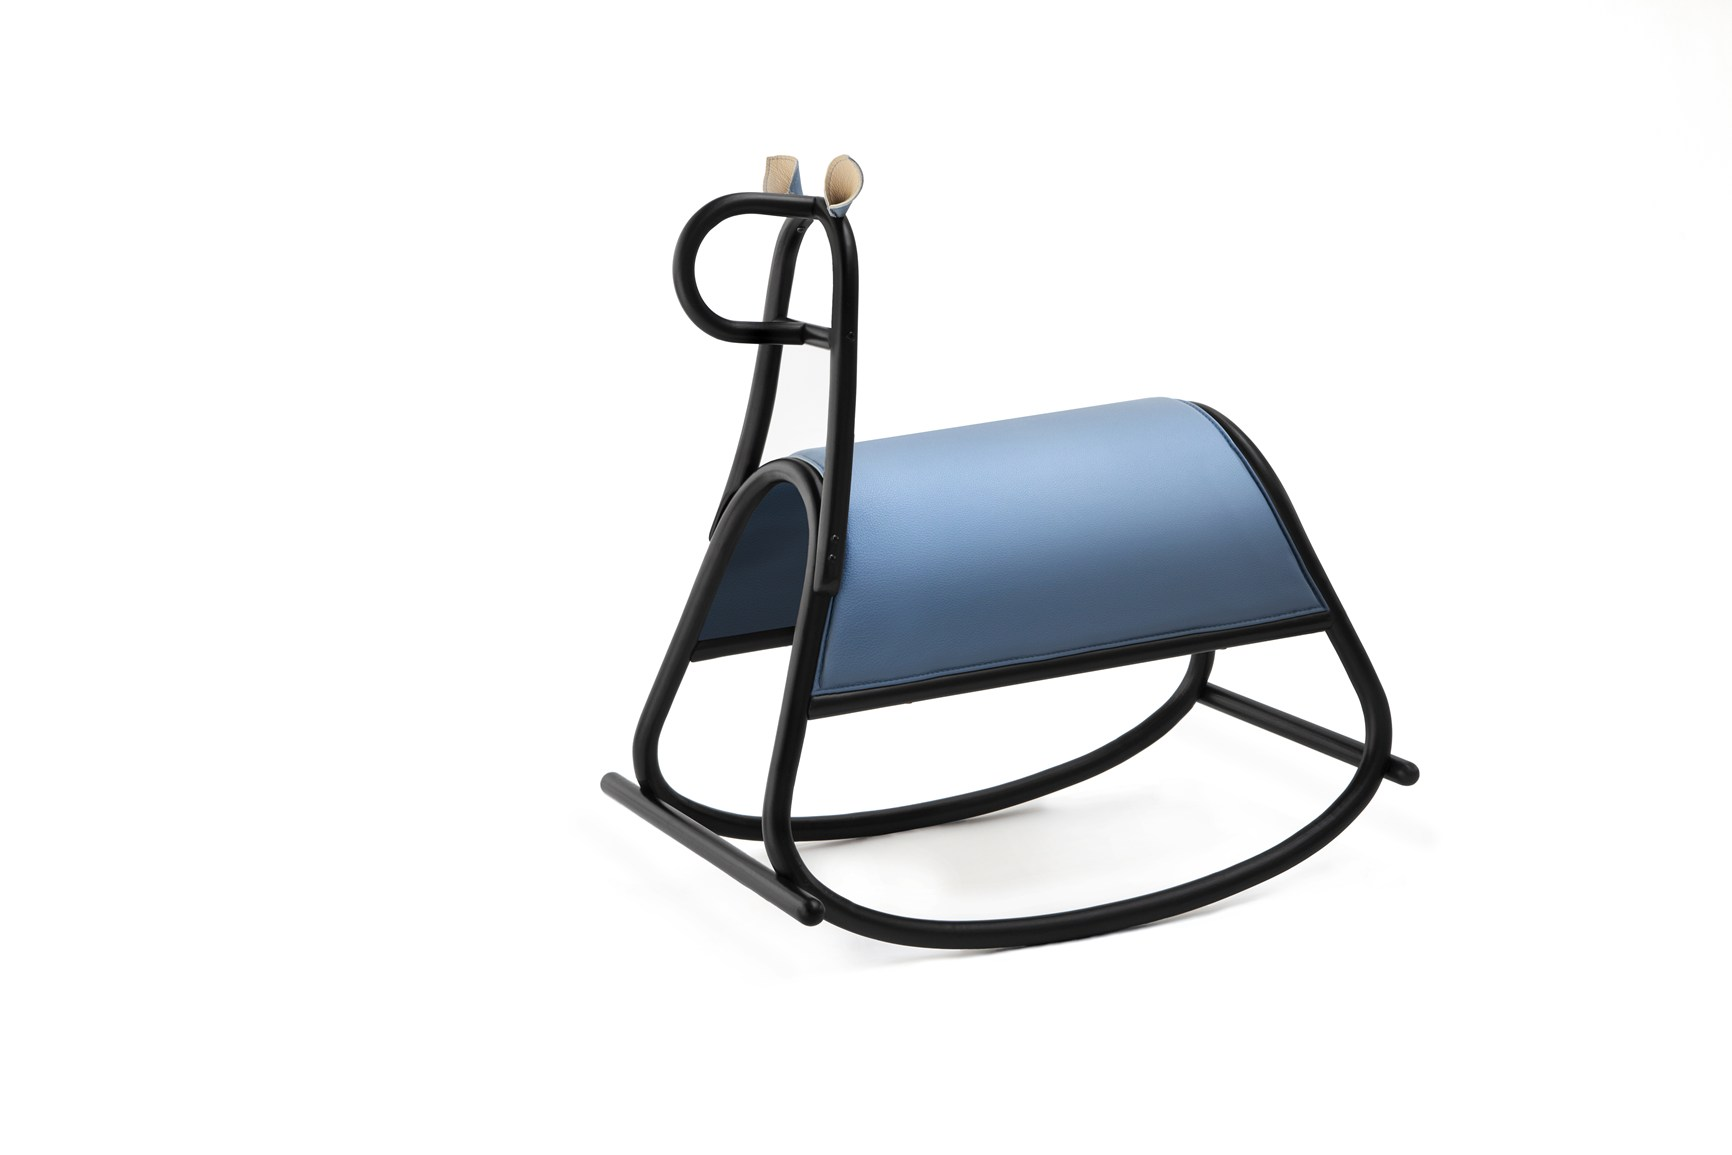 FURIA Rocking Horse by Front for Wiener GTV Design